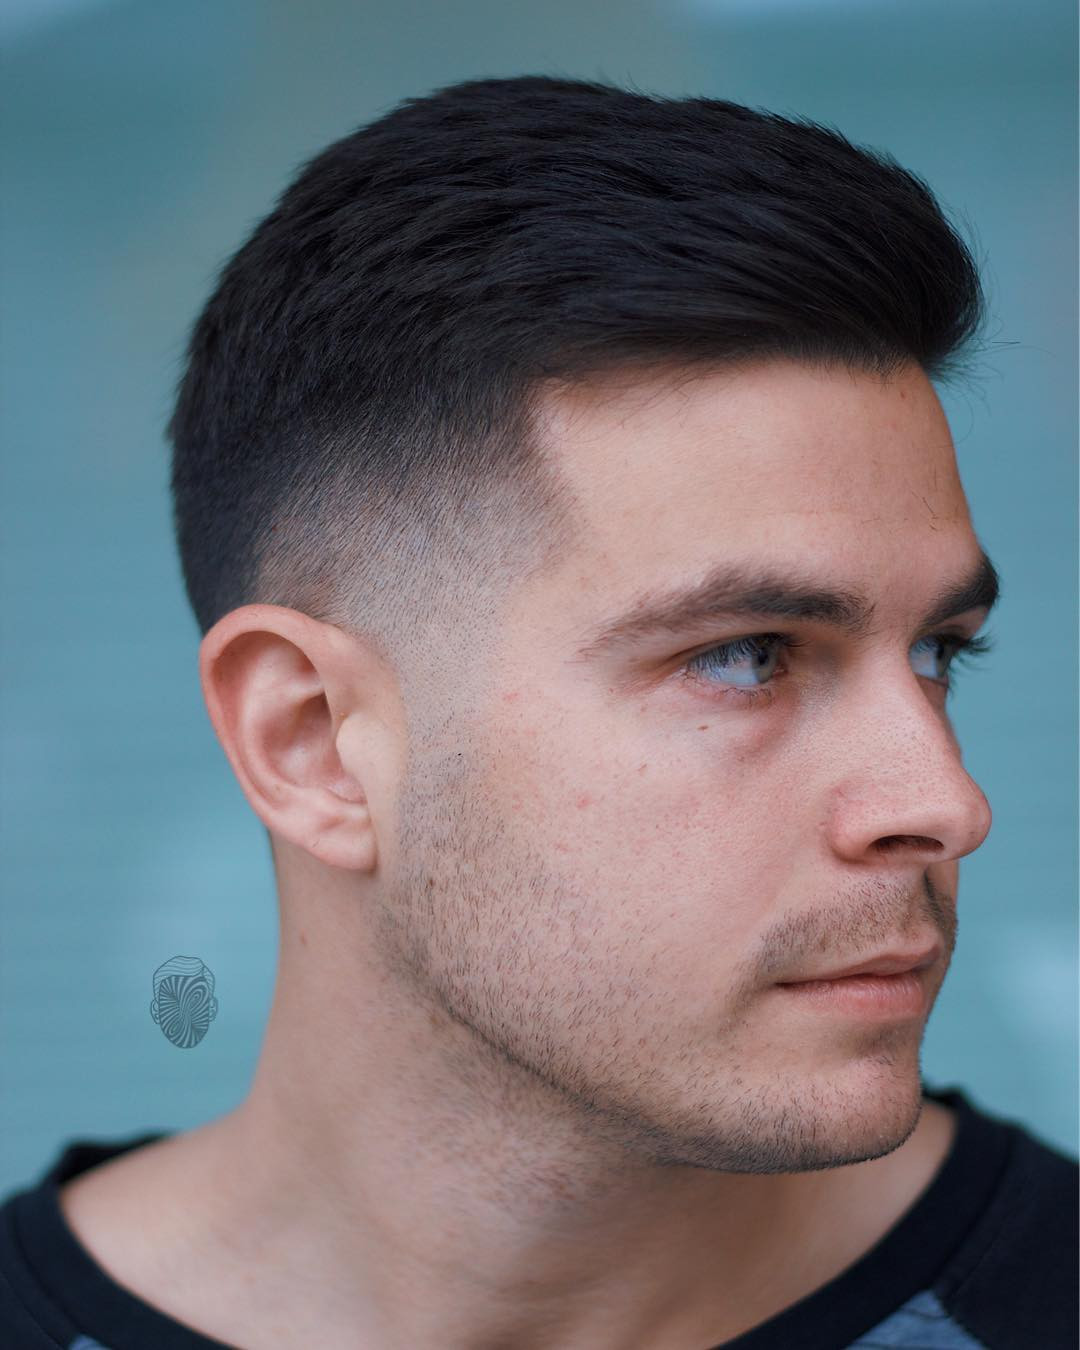 Short Haircuts For Boys  Short Hairstyles for Men 2018